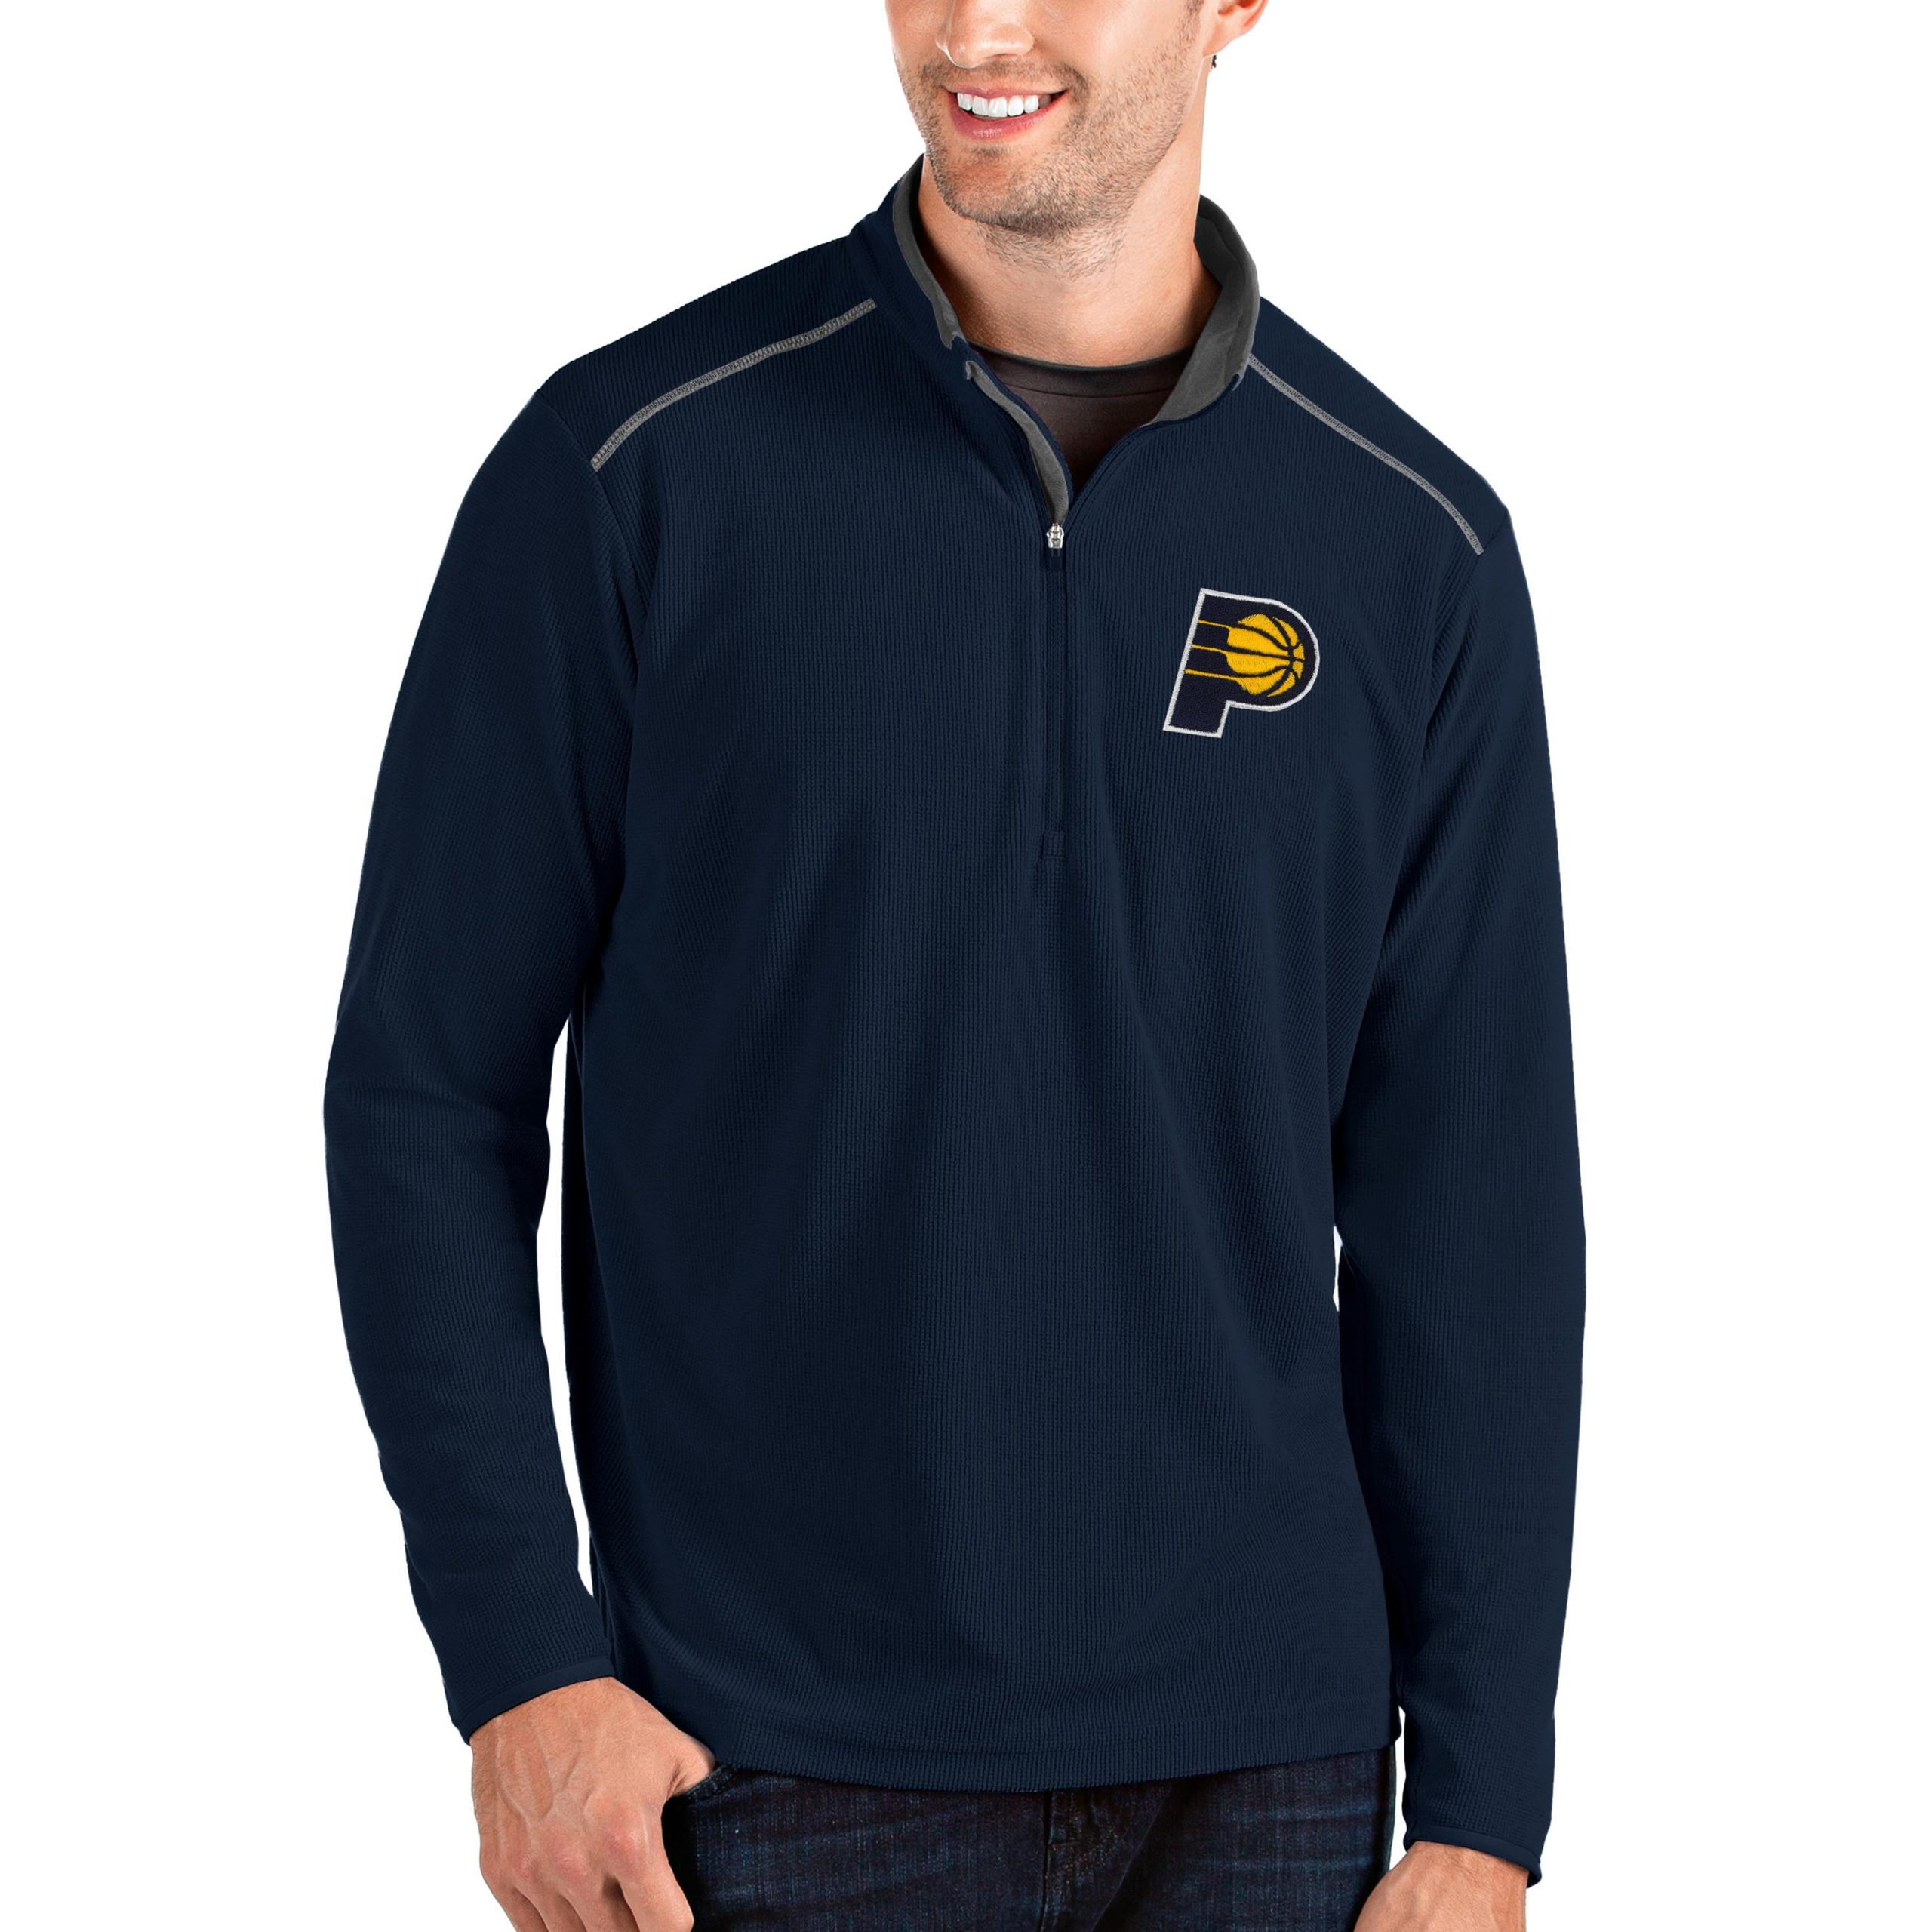 Indiana Pacers Antigua Big & Tall Glacier Quarter-Zip Pullover Jacket - Navy/Gray